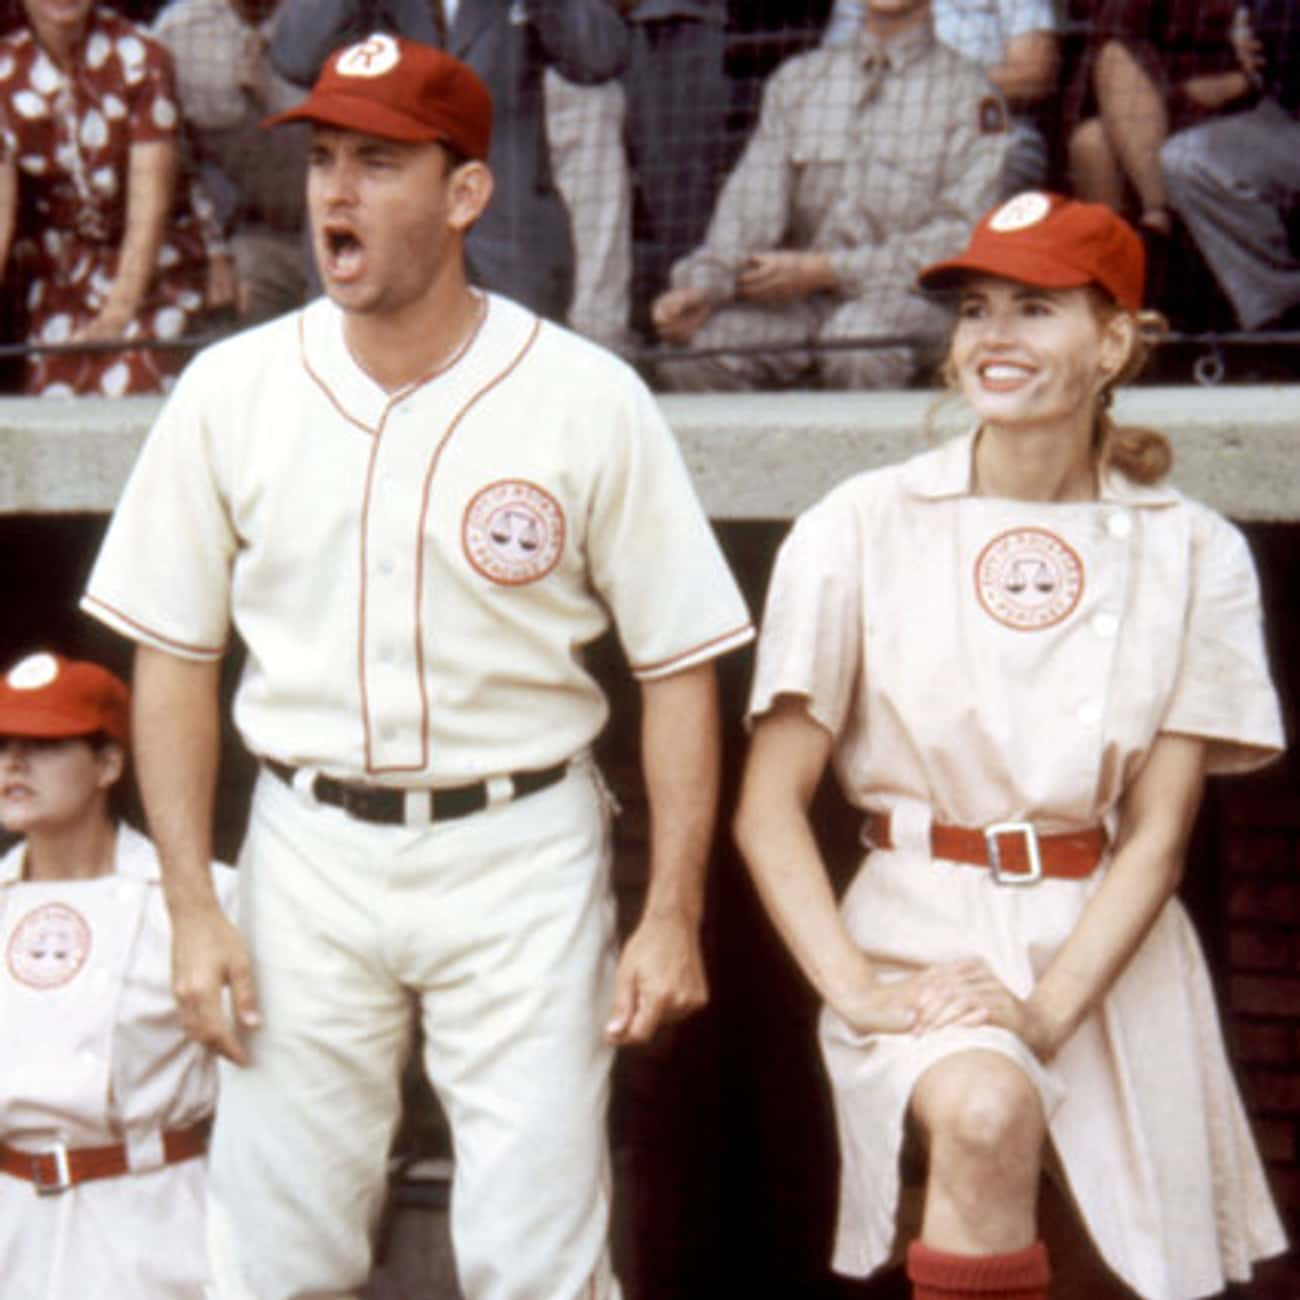 Jimmy and Dottie - A League of is listed (or ranked) 3 on the list The Best Male/Female Platonic Friendships in Film